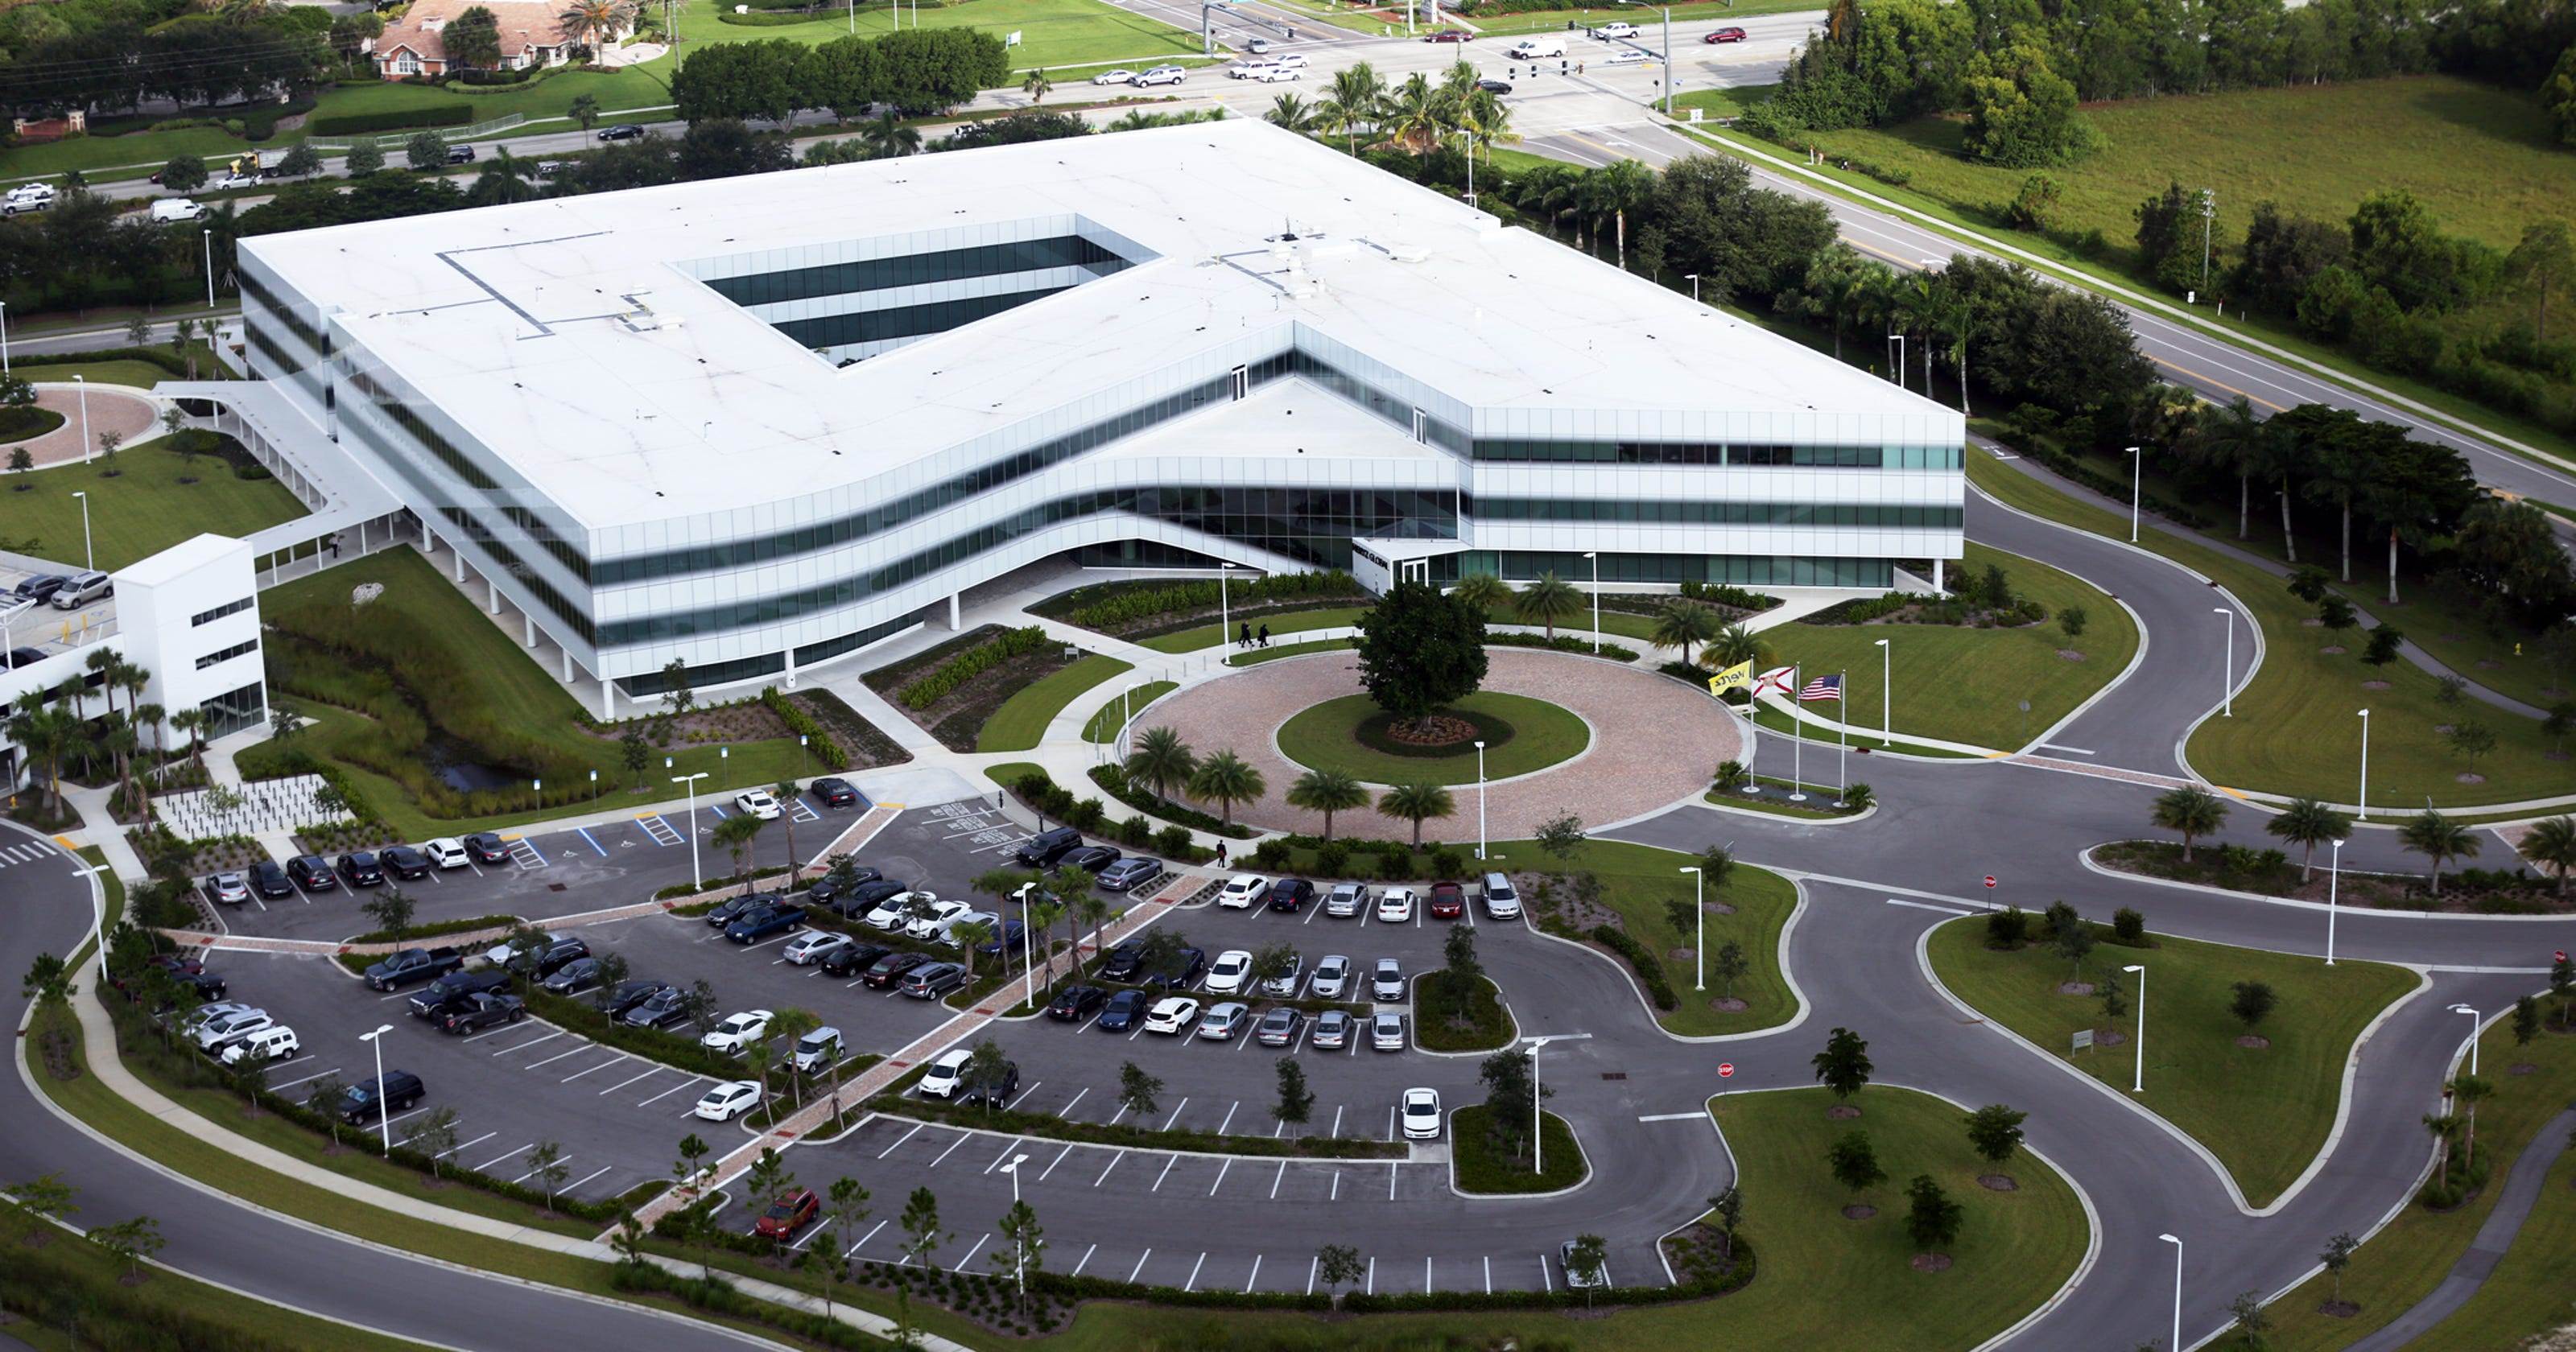 Hertz reports 24 layoffs, including 19 at headquarters in Estero